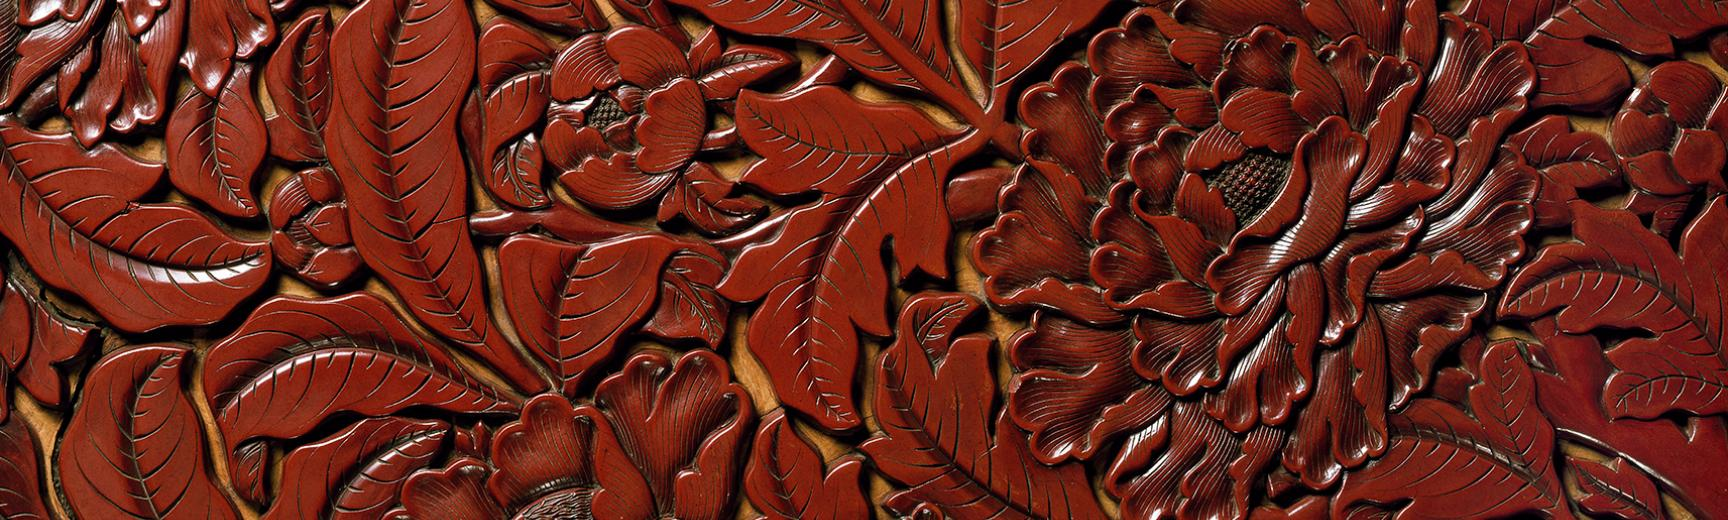 Lacquer dish, China (detail), c.1420